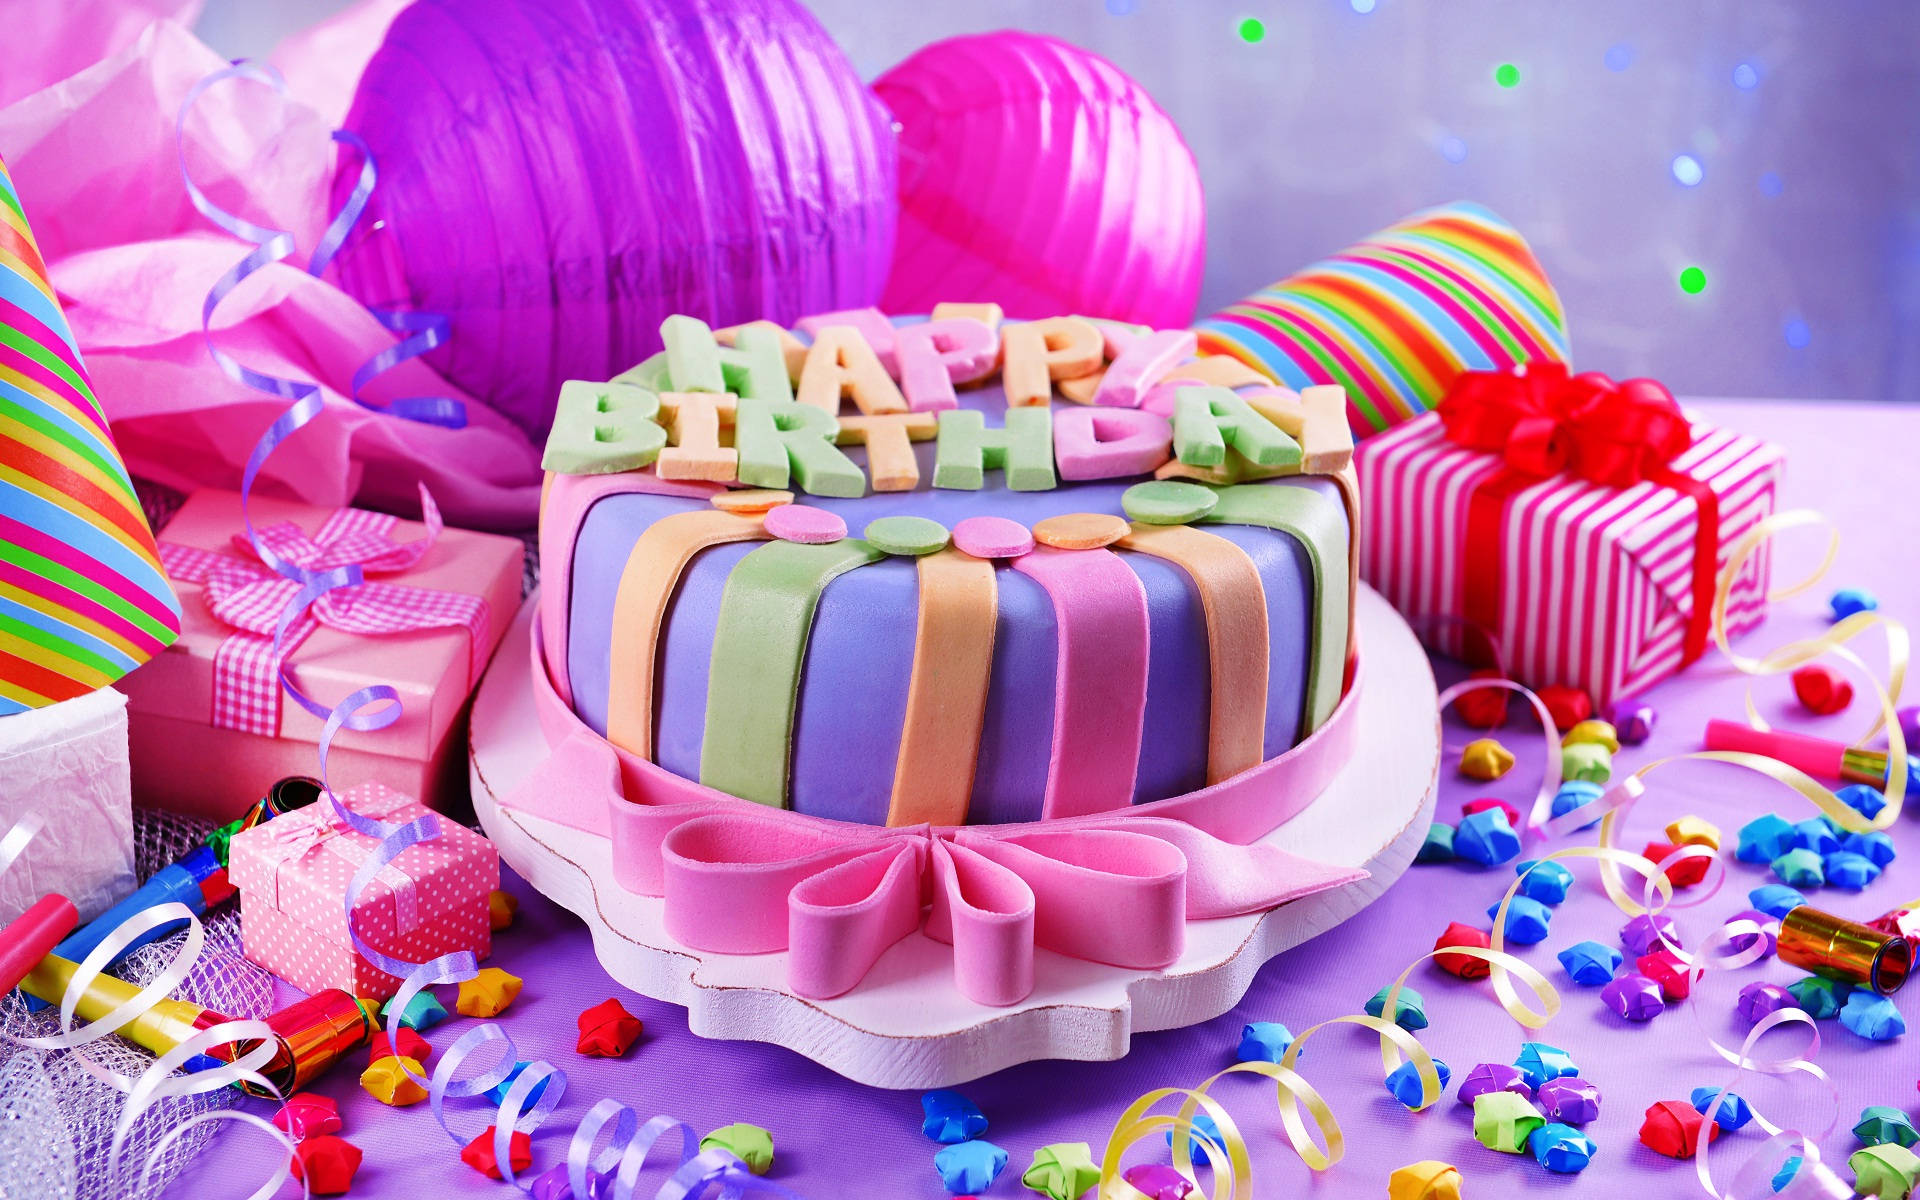 happy birthday full hd images ; Happy-Birthday-celebration-full-HD-wallpapers